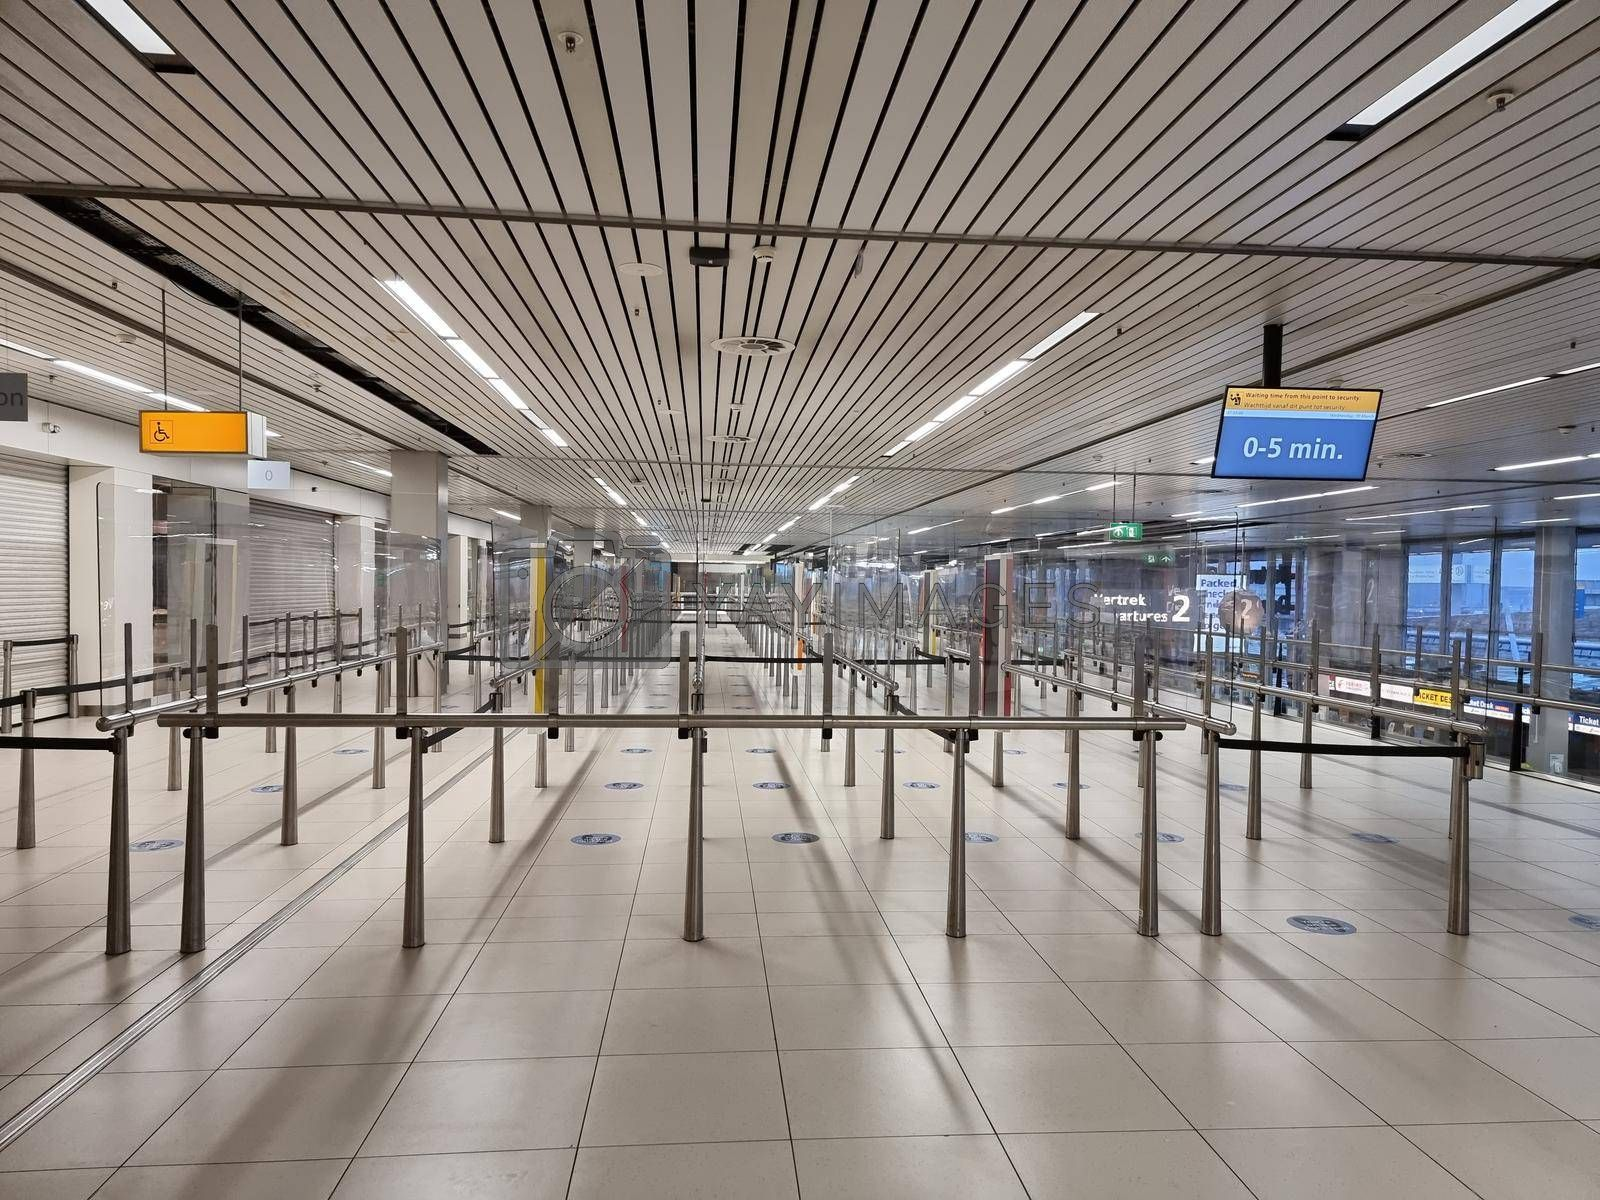 Amsterdam Netherlands March 2021, empty terminal at Schiphol airport Amsterdam during covid 19 corona outbreak pandemic in the world. Empty airport Amsterdam Schiphol